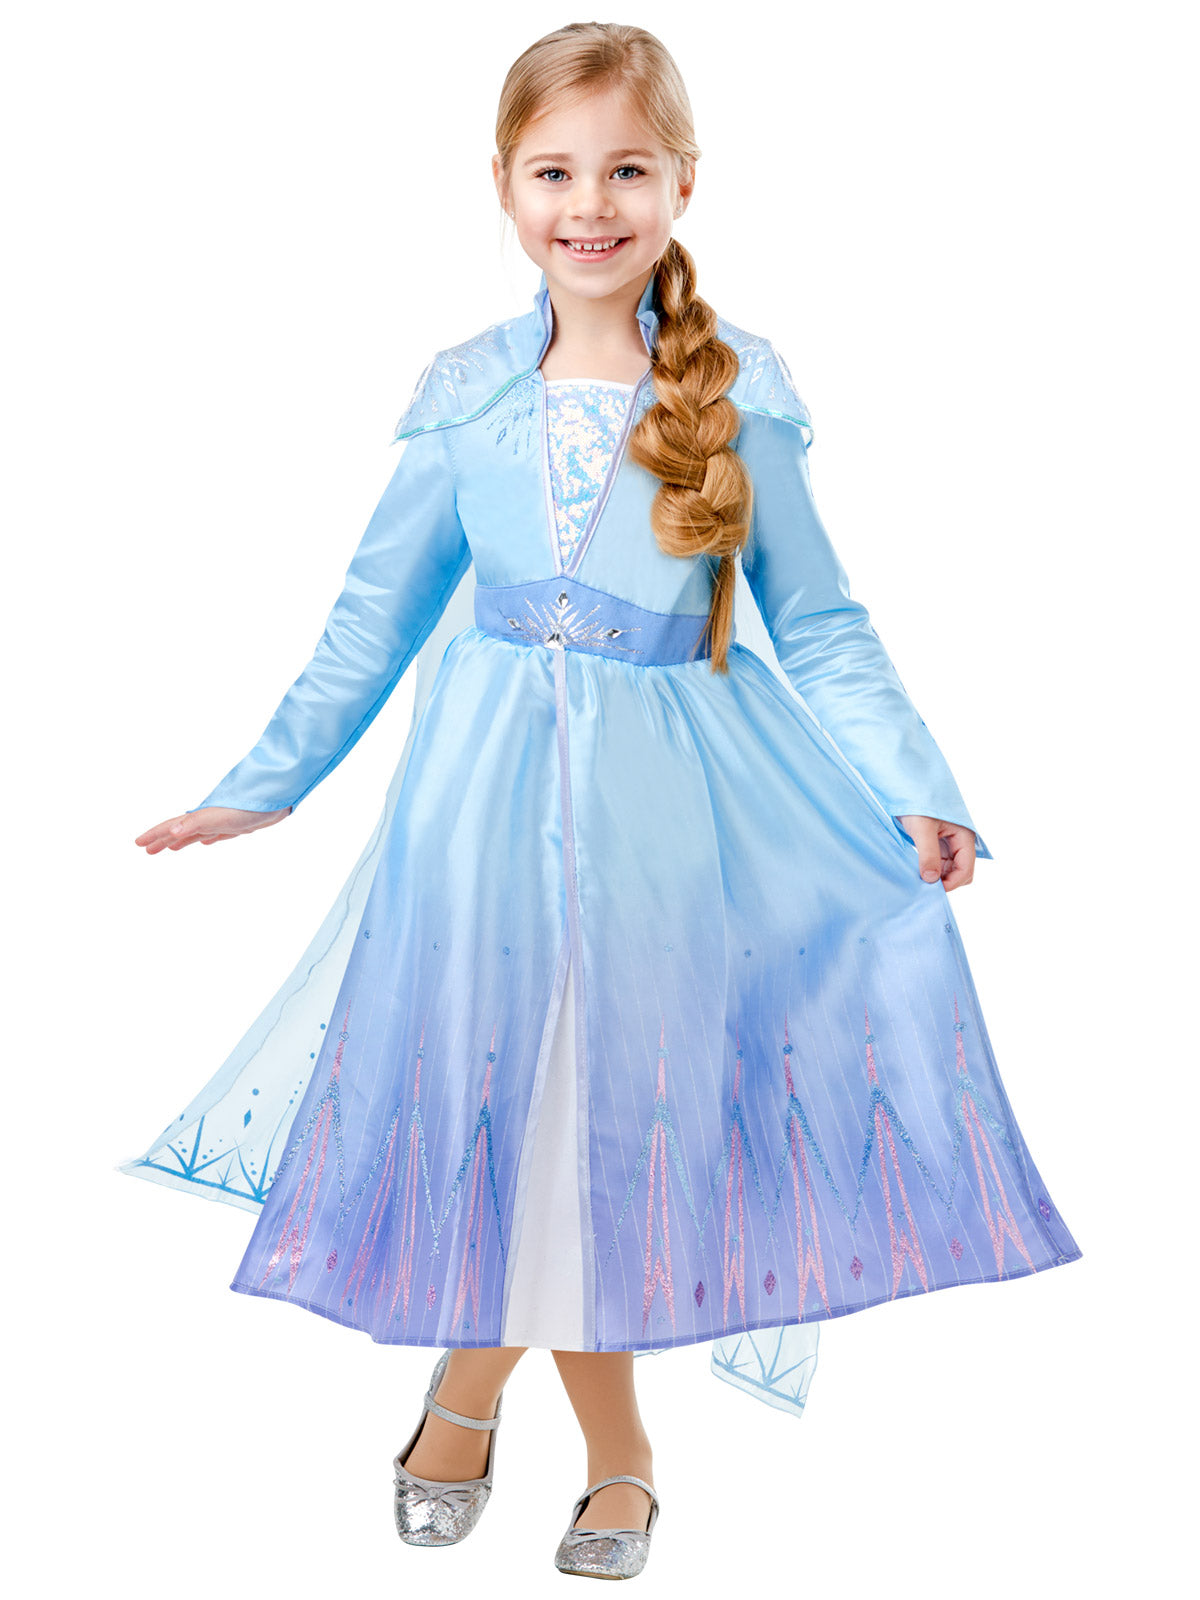 Elsa Frozen 2 Deluxe Child Costume - Buy Online Only